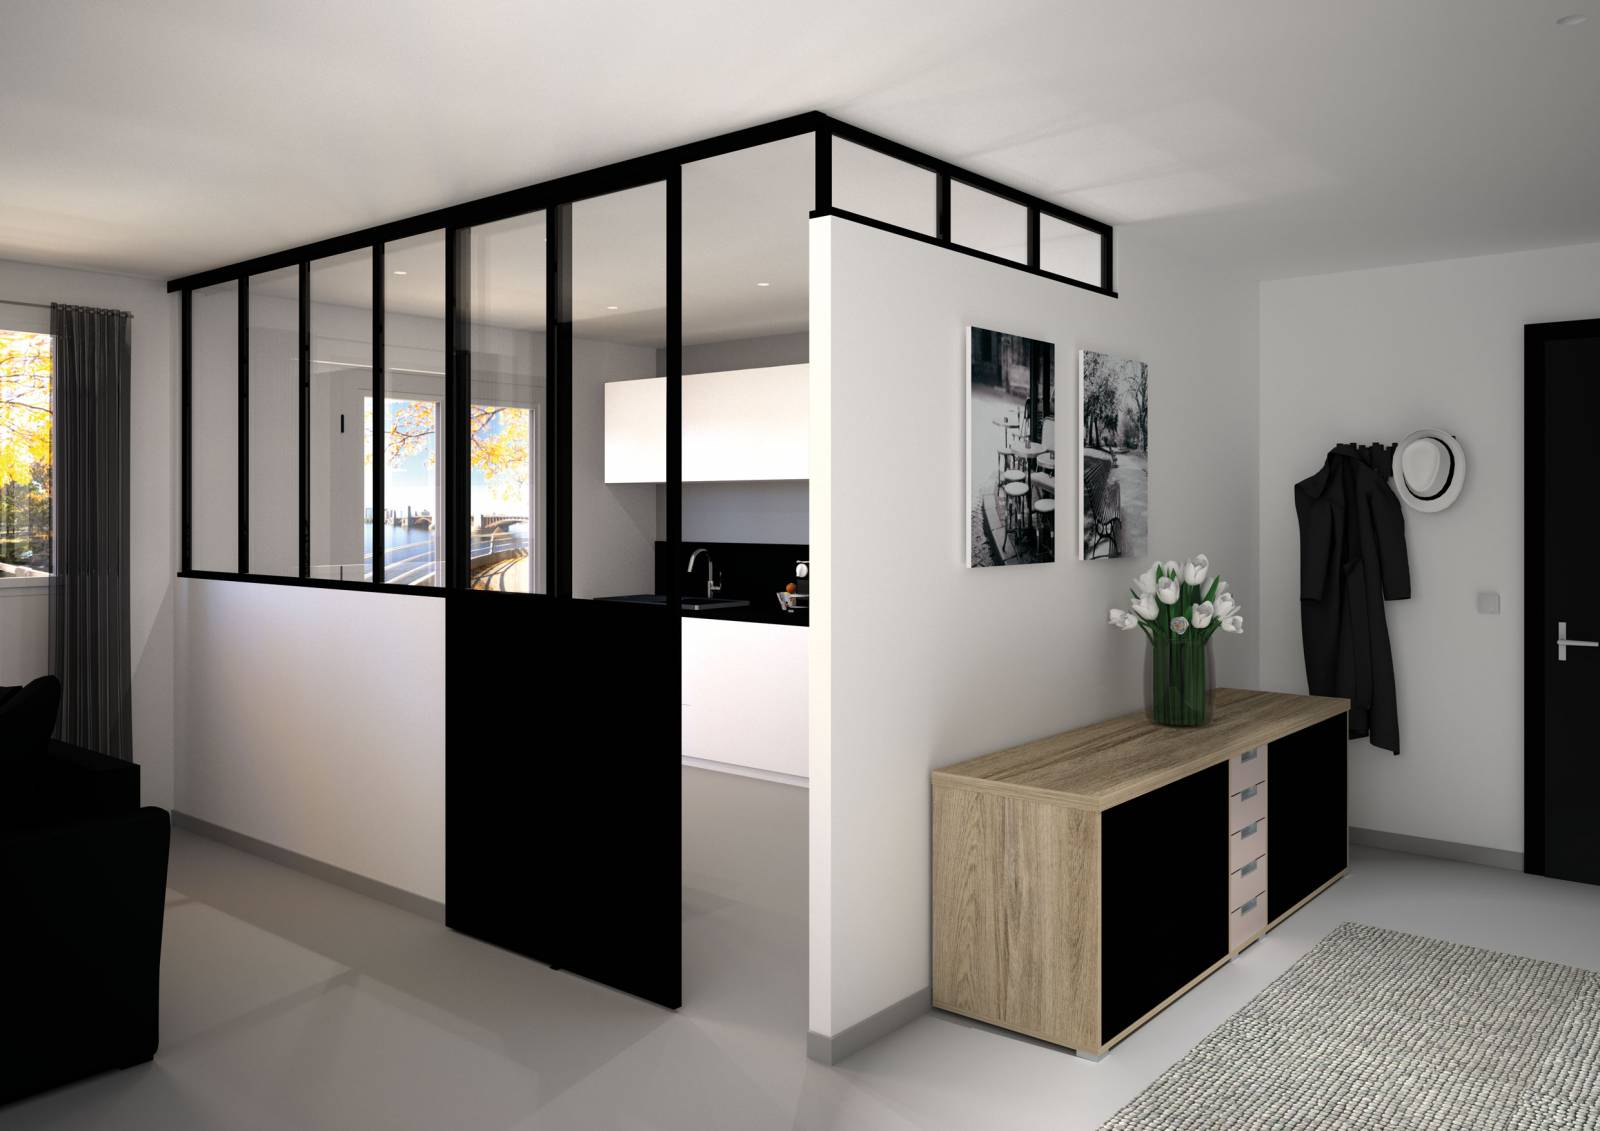 verri re sur mesure conception de cuisines allemandes libourne cuisiligne. Black Bedroom Furniture Sets. Home Design Ideas